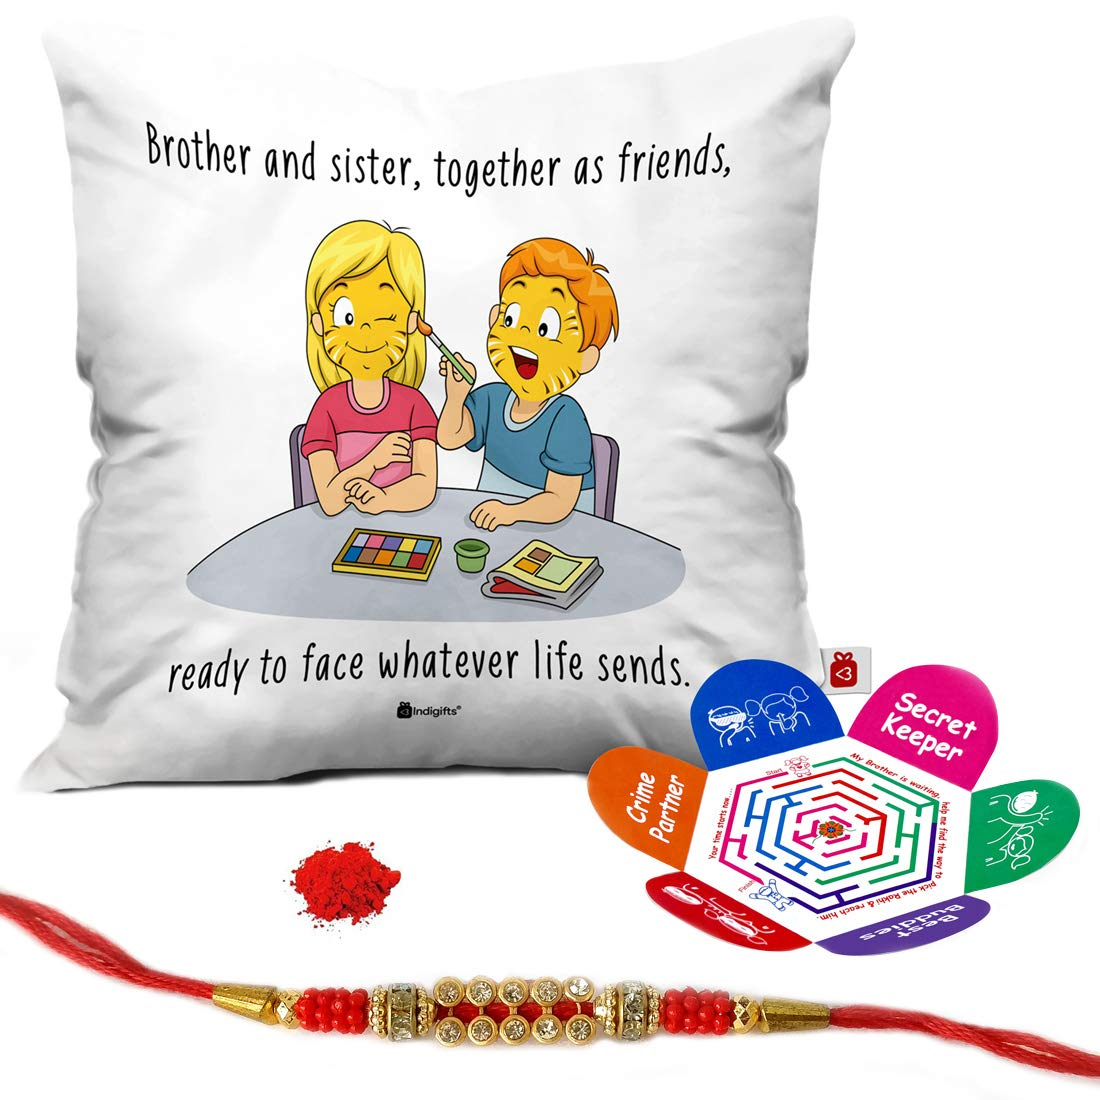 Indi ts Rakhi Gifts for Brother Set of Siblings as Best